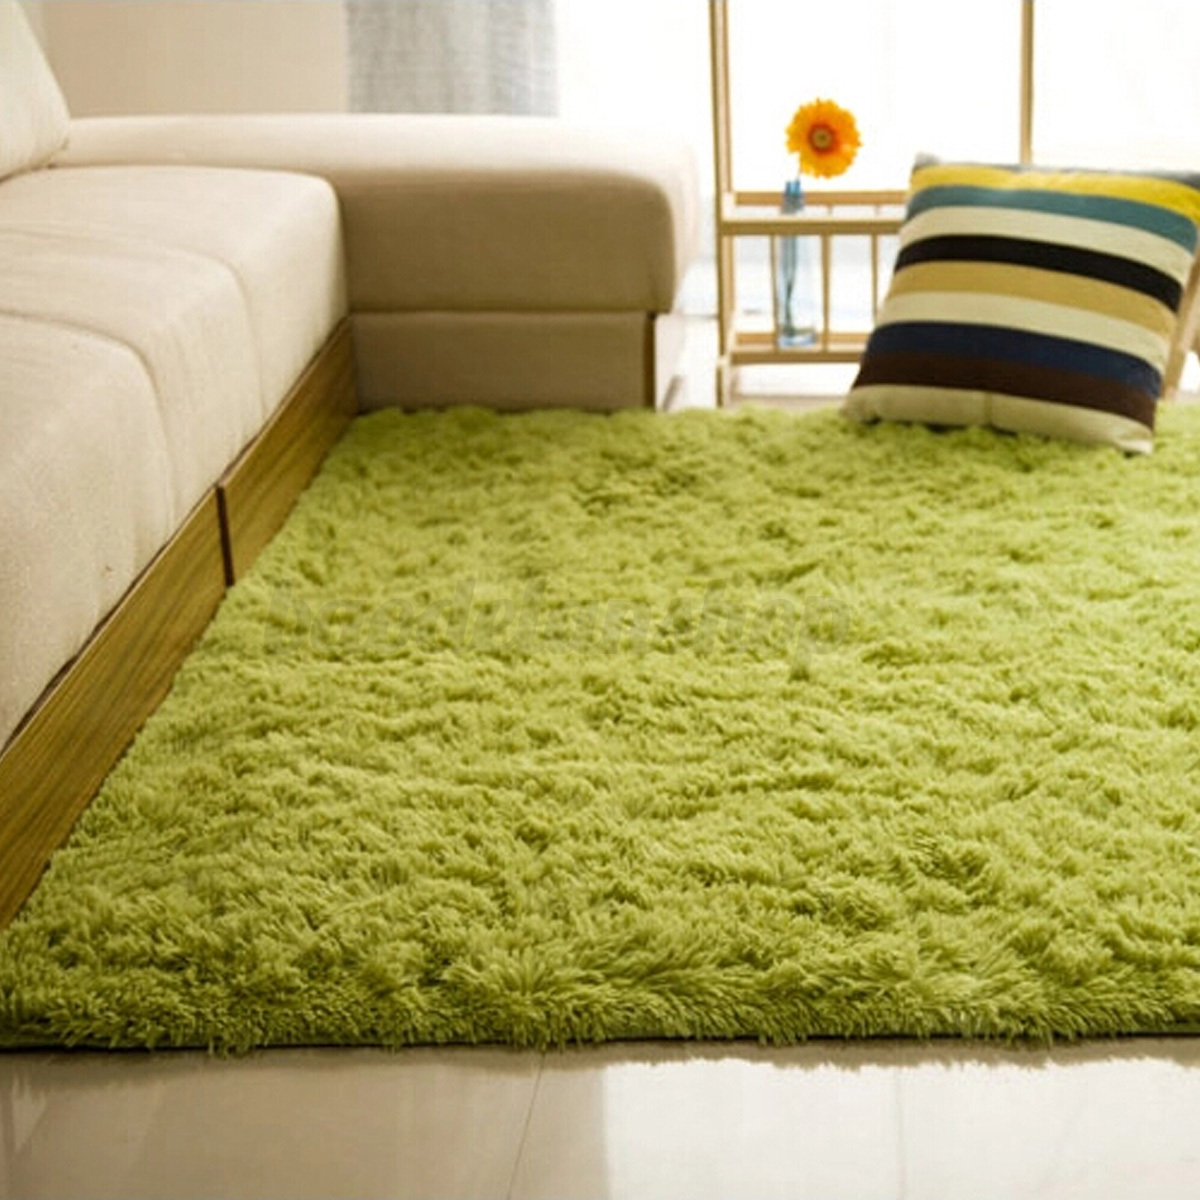 Fluffy Rugs Anti-Skid Shaggy Area Rug Dining Room Home ...